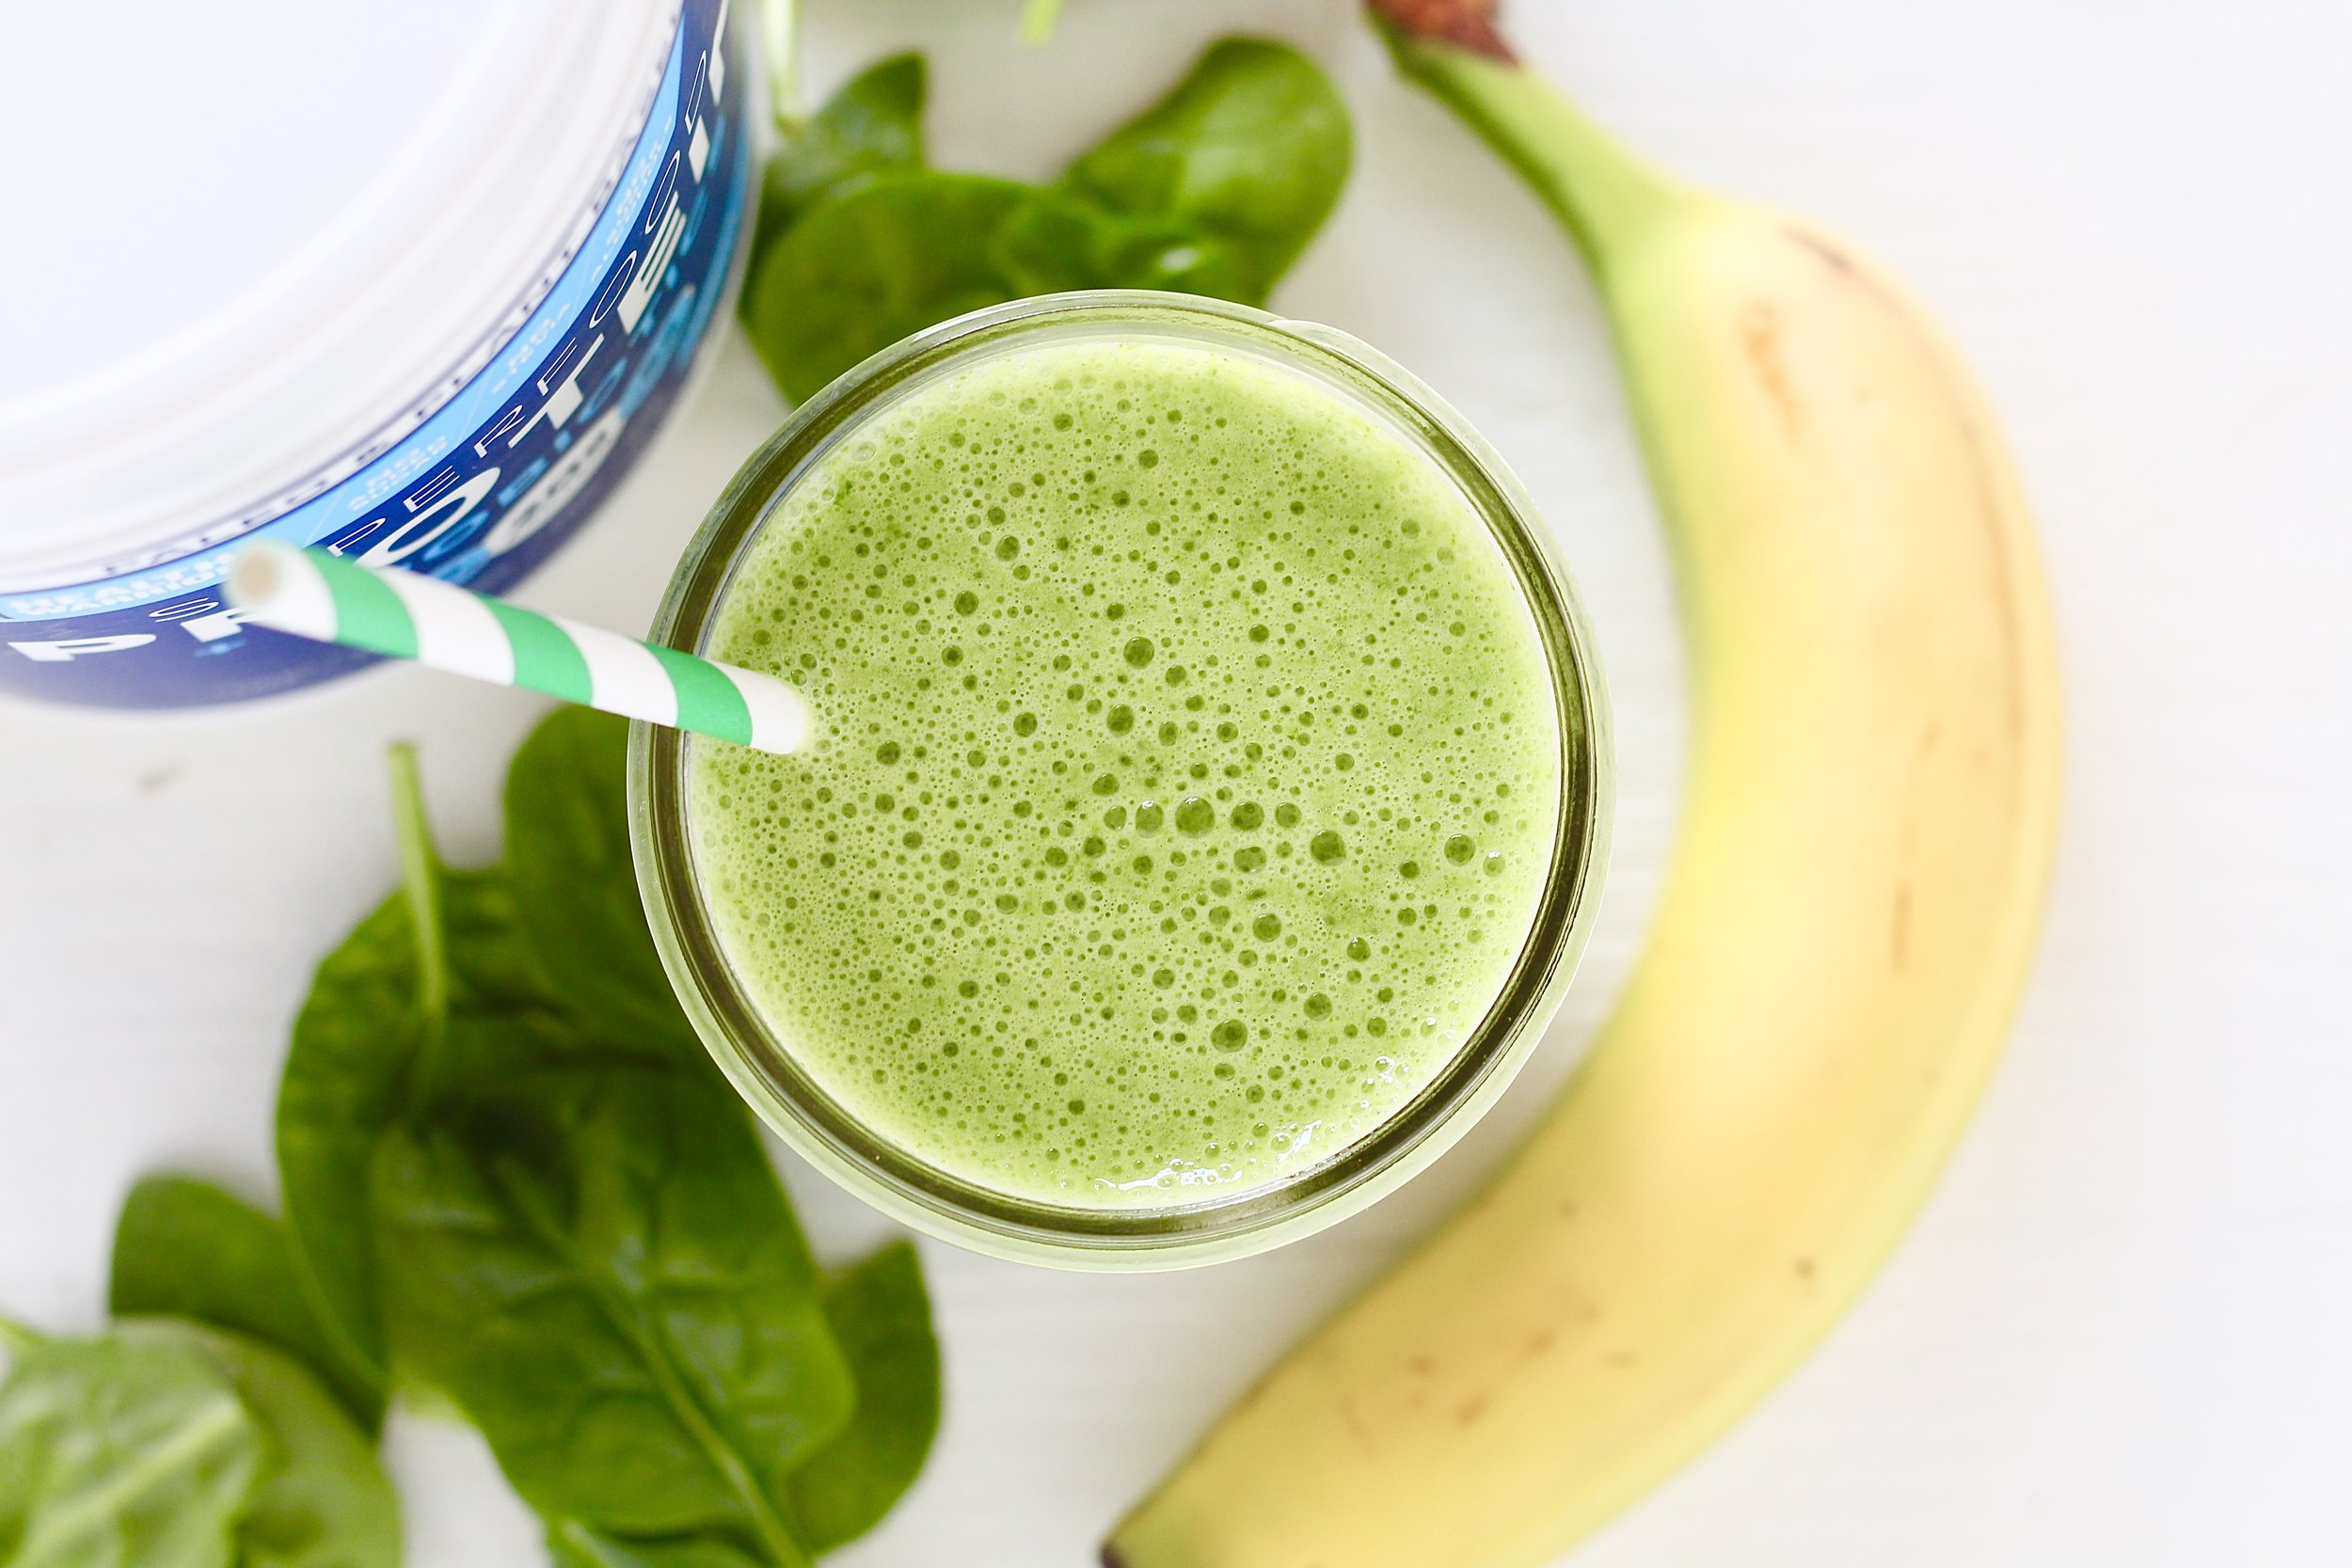 What a diabetic dietitian puts in her smoothies